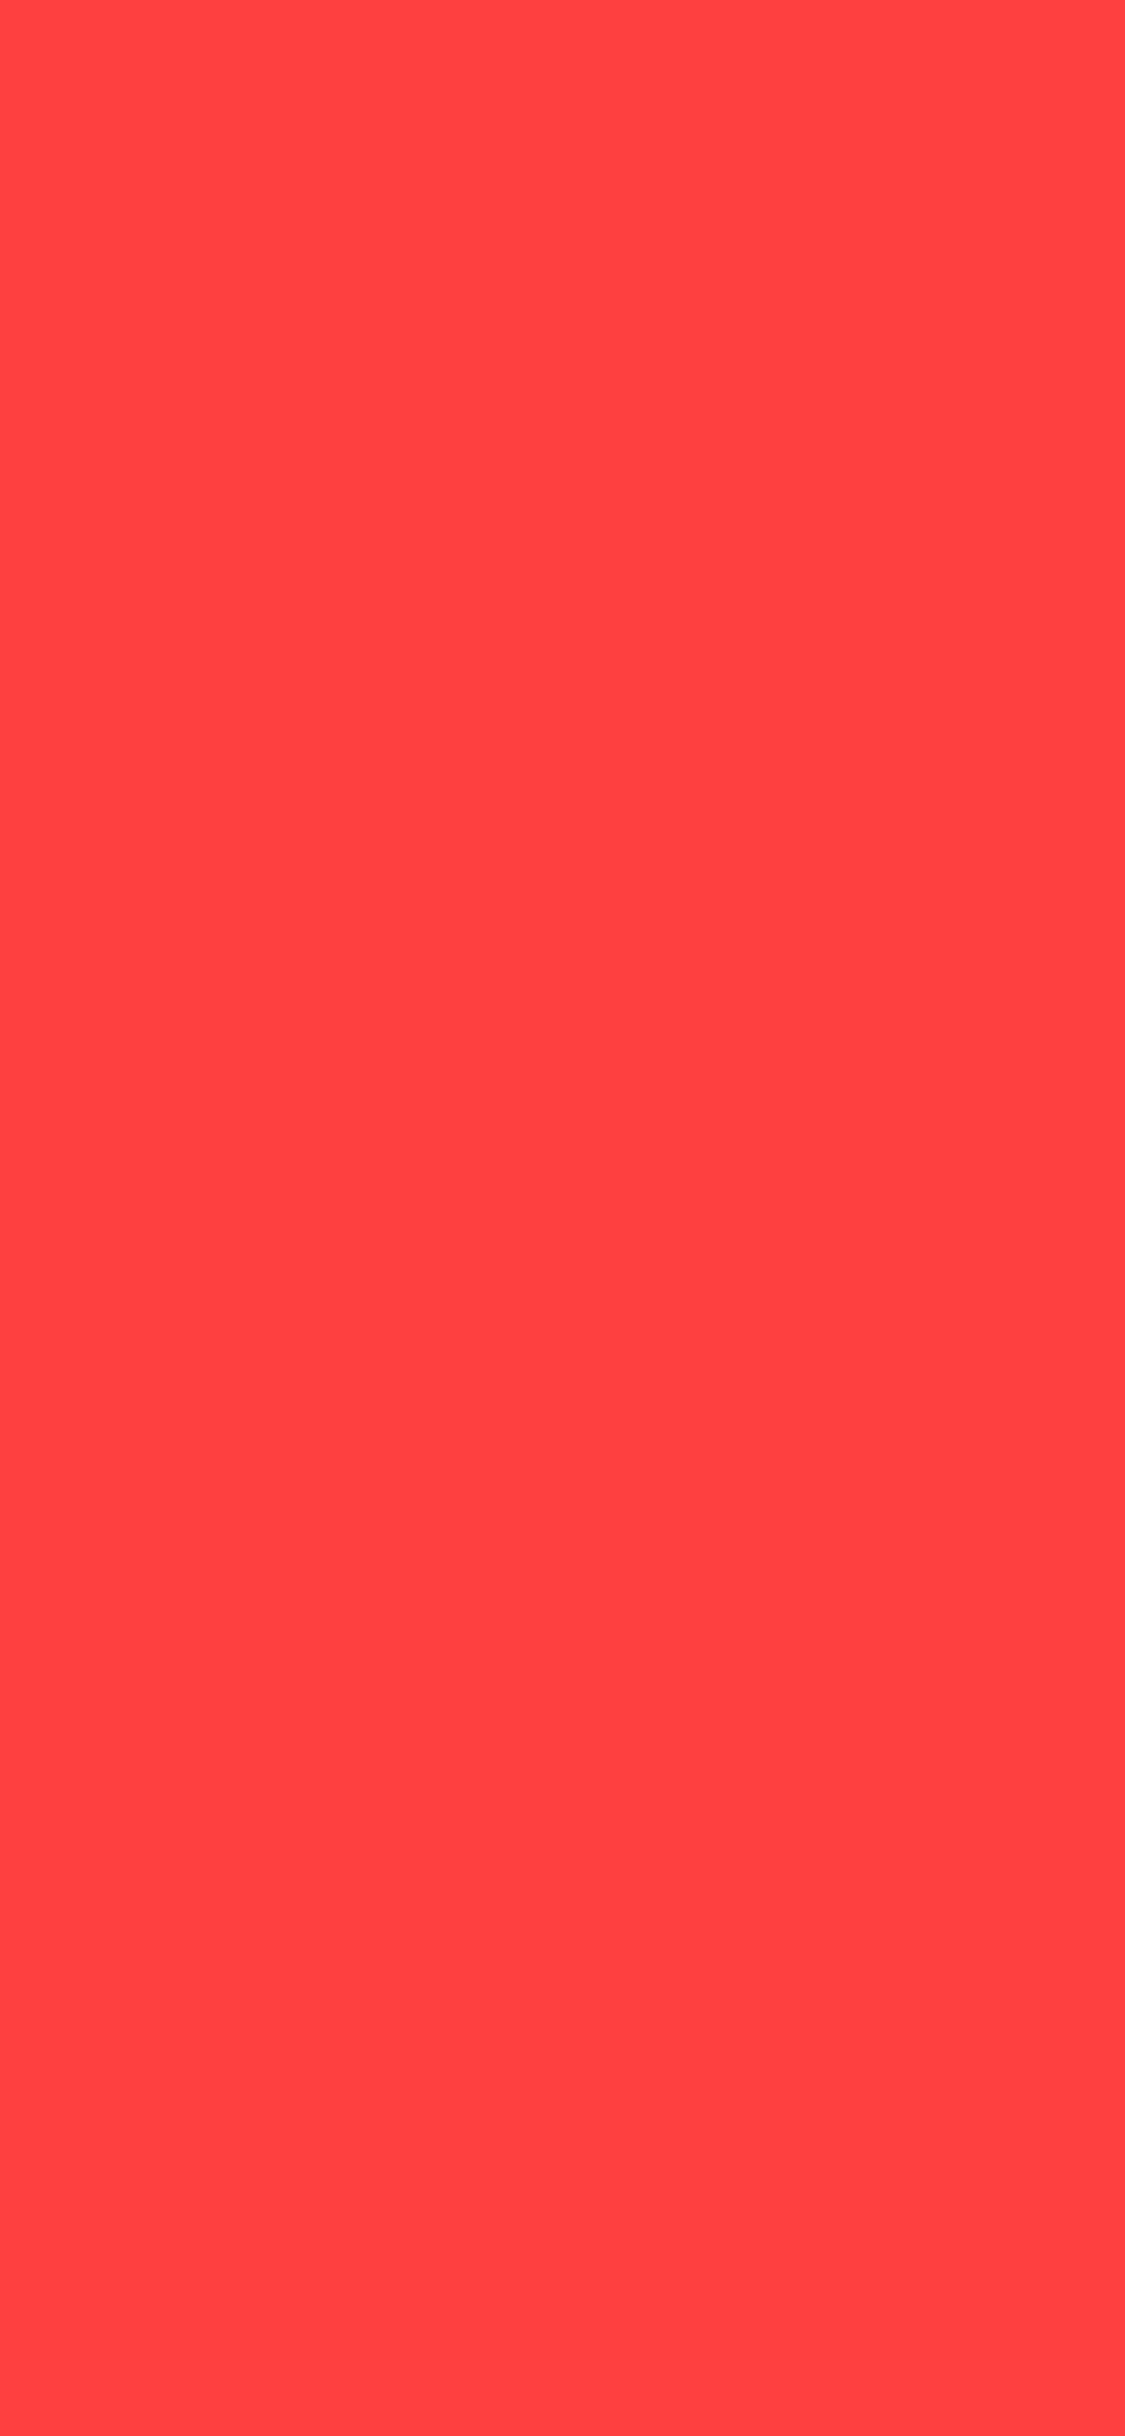 1125x2436 Coral Red Solid Color Background